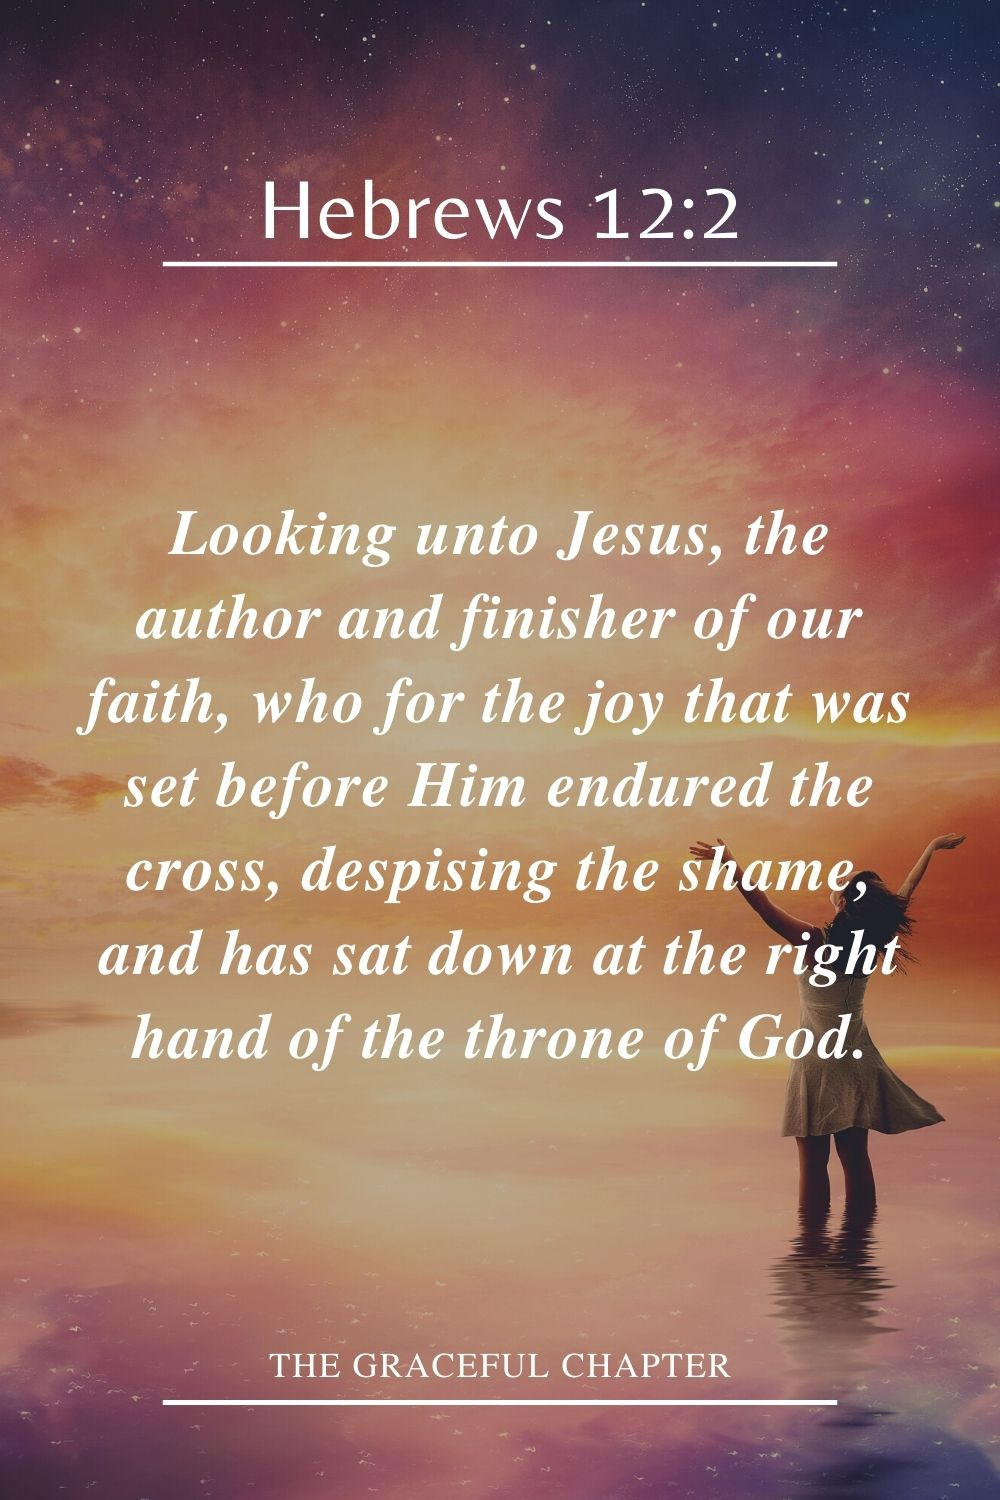 Hebrews 12:2 Jesus, the author and finisher of our faith